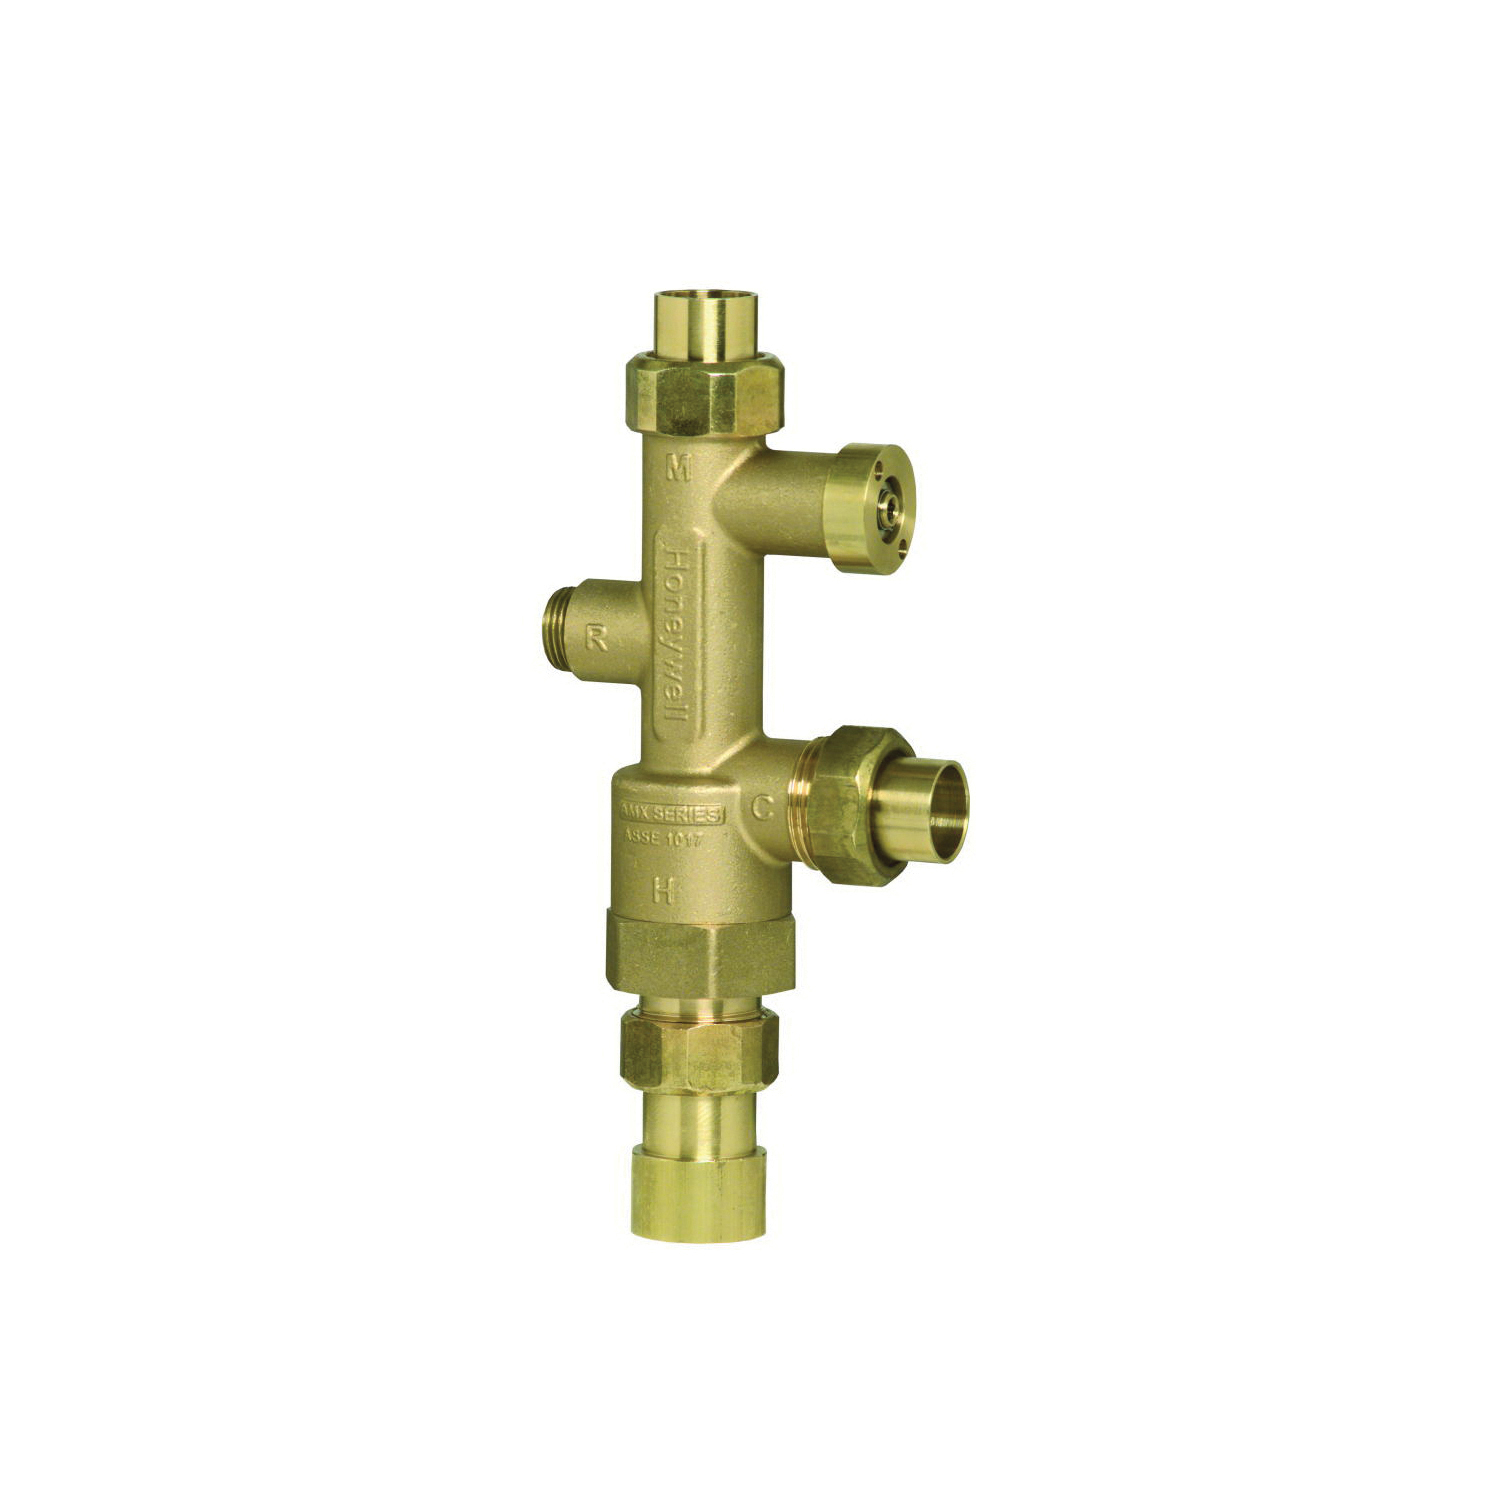 Honeywell DirectConnect™ AMX102-UT-1LF/U Thermostatic Mixing Valve, 1 in, Union NPT, Brass/Stainless Steel Body, Domestic